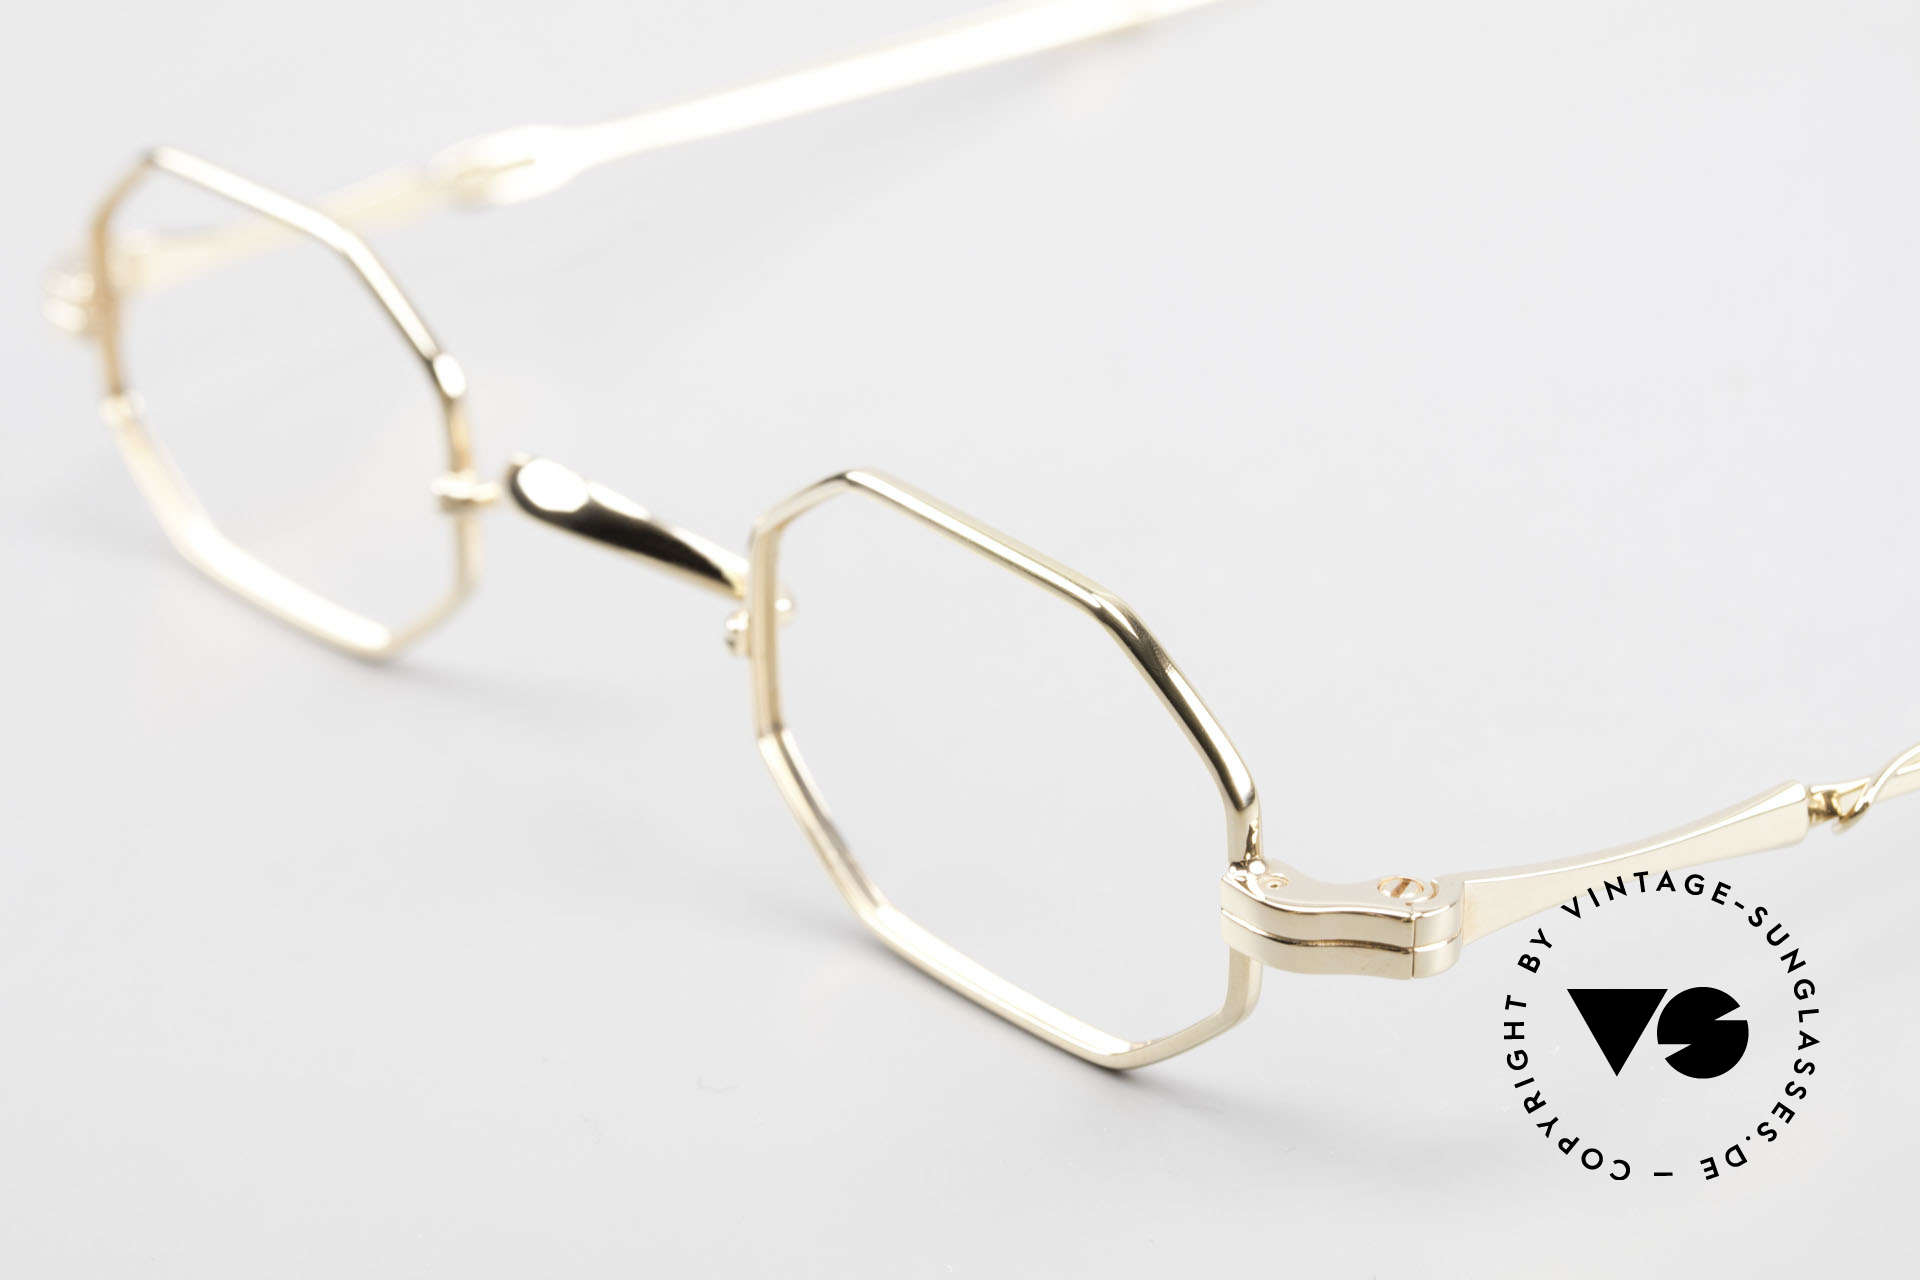 Lunor I 01 Telescopic Octagonal Frame Gold Plated, as well as for the brilliant telescopic / extendable arms, Made for Men and Women